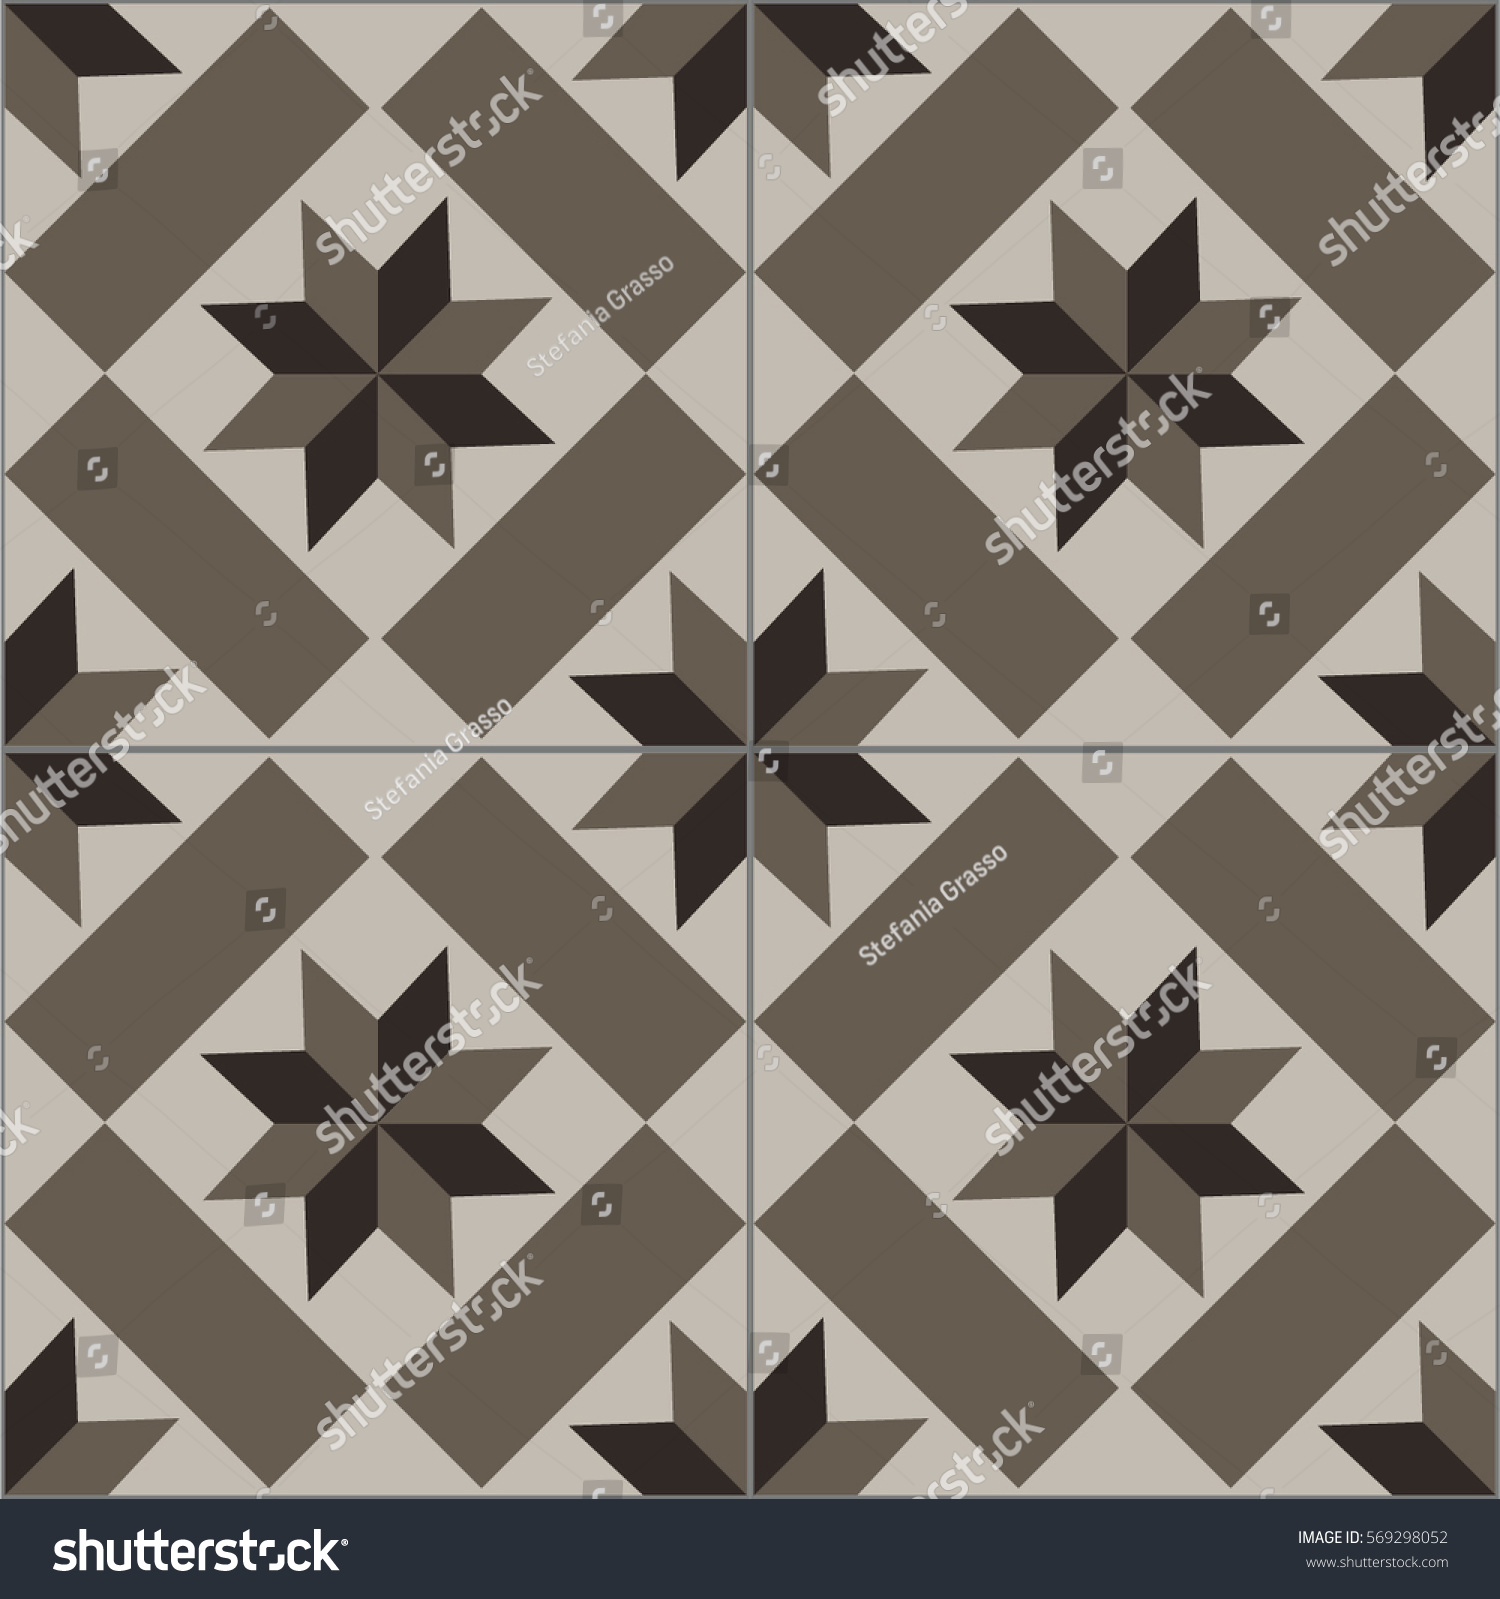 patterned floor wall tiles modern decor stock vector 569298052 patterned floor and wall tiles modern decor of the traditional encaustic technique ceramic decorative